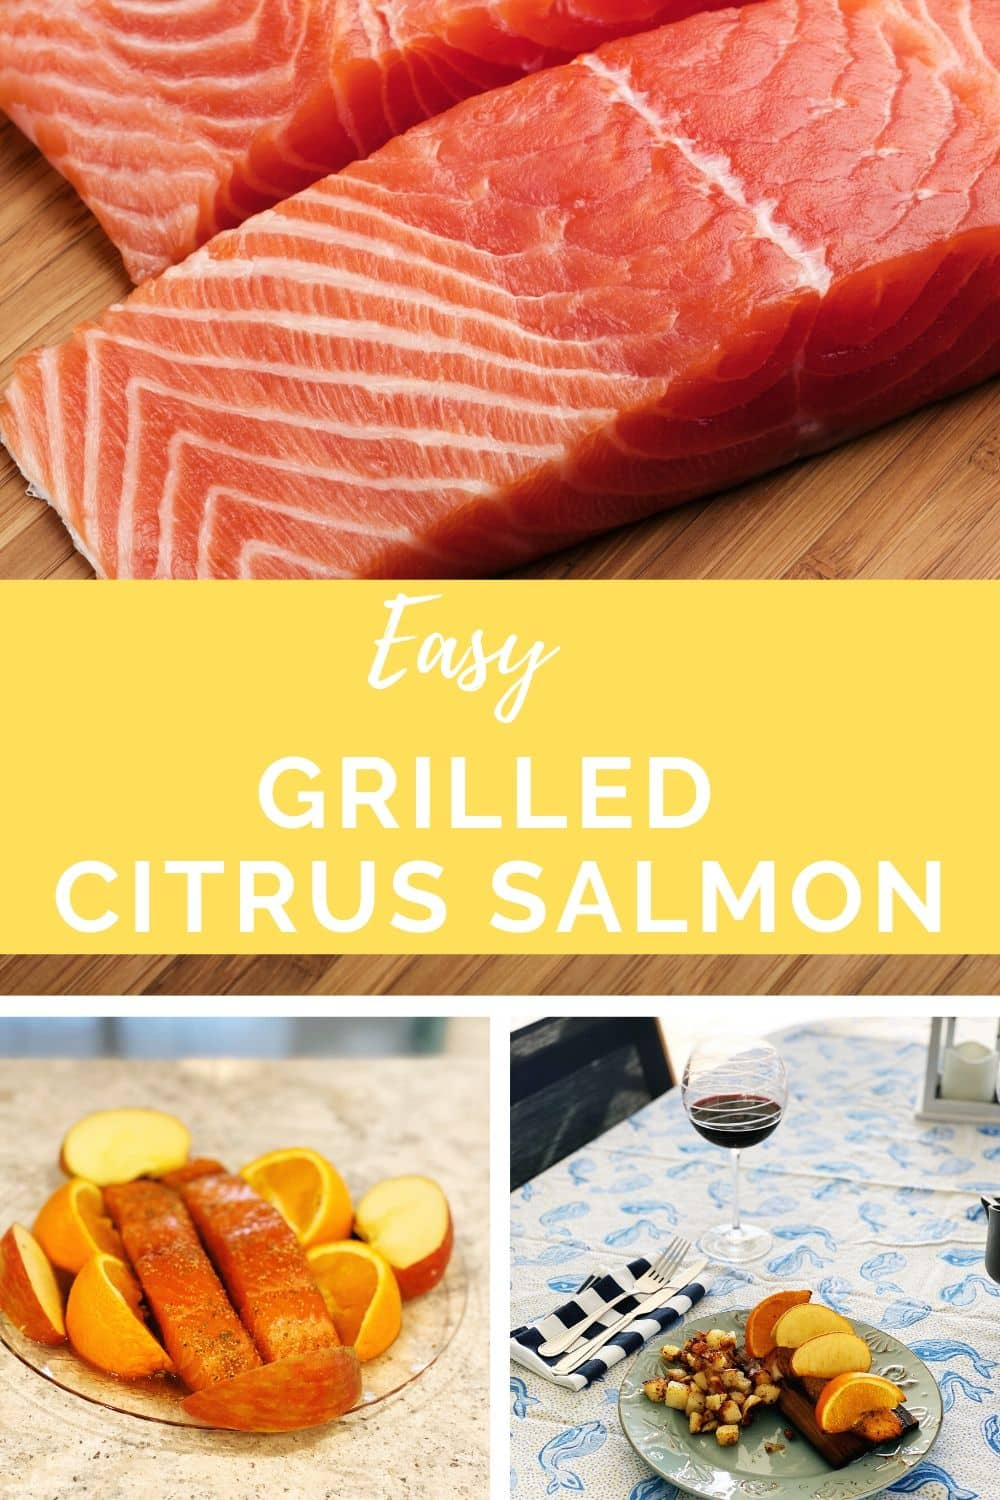 salmon fillets waiting to be grilled, citrus salmon grilled on table with print table cloth and glass of wine